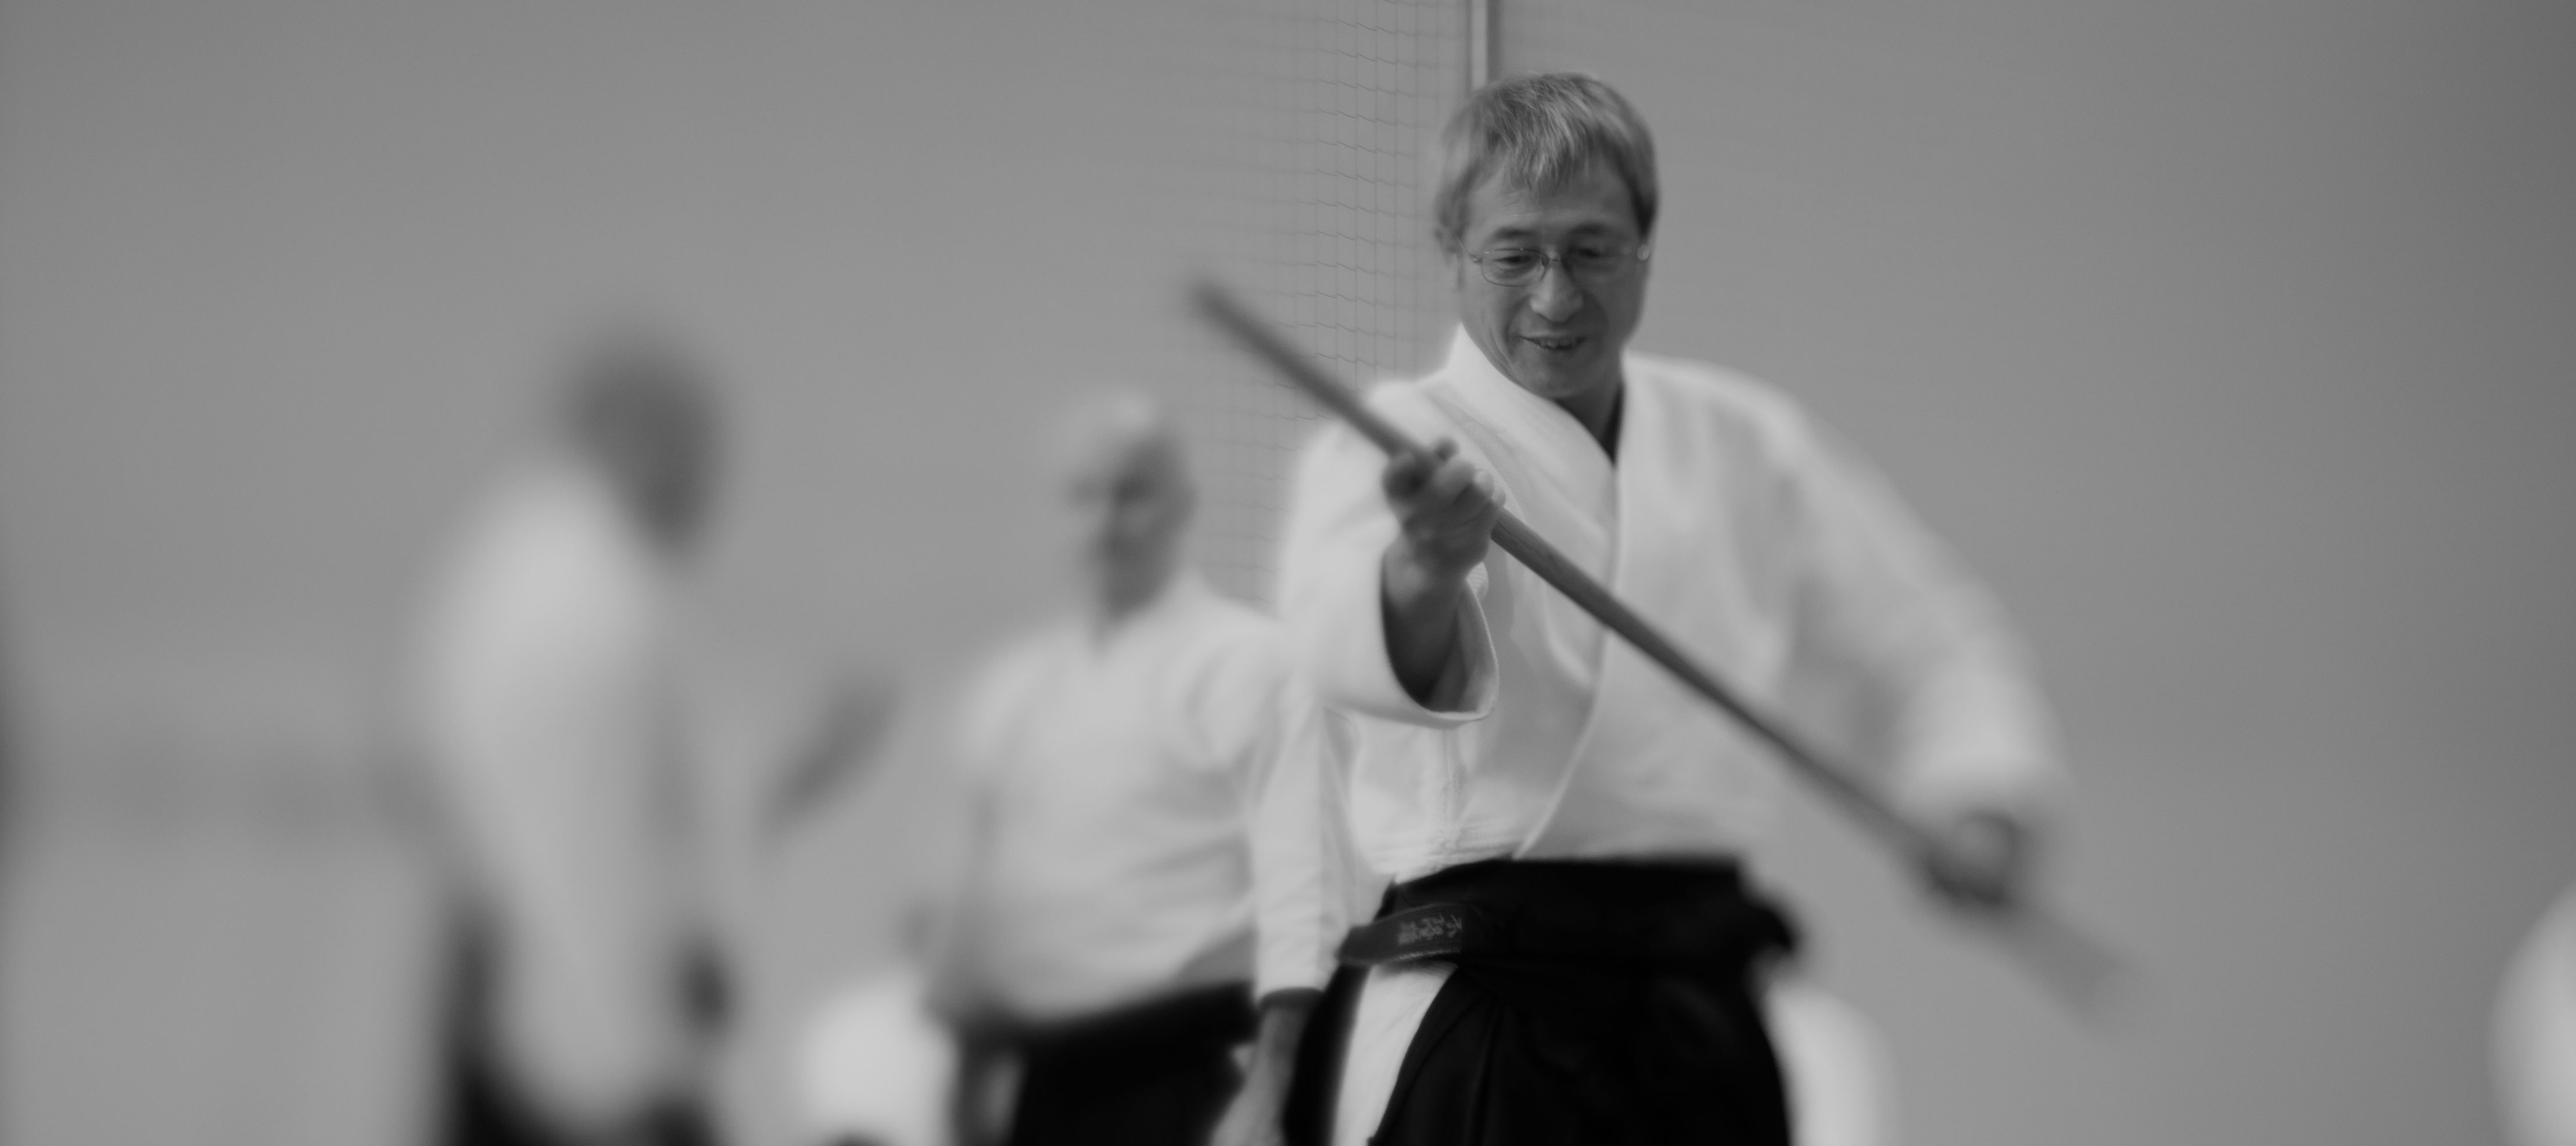 Aikido Seminar with Takao Arisue sensei